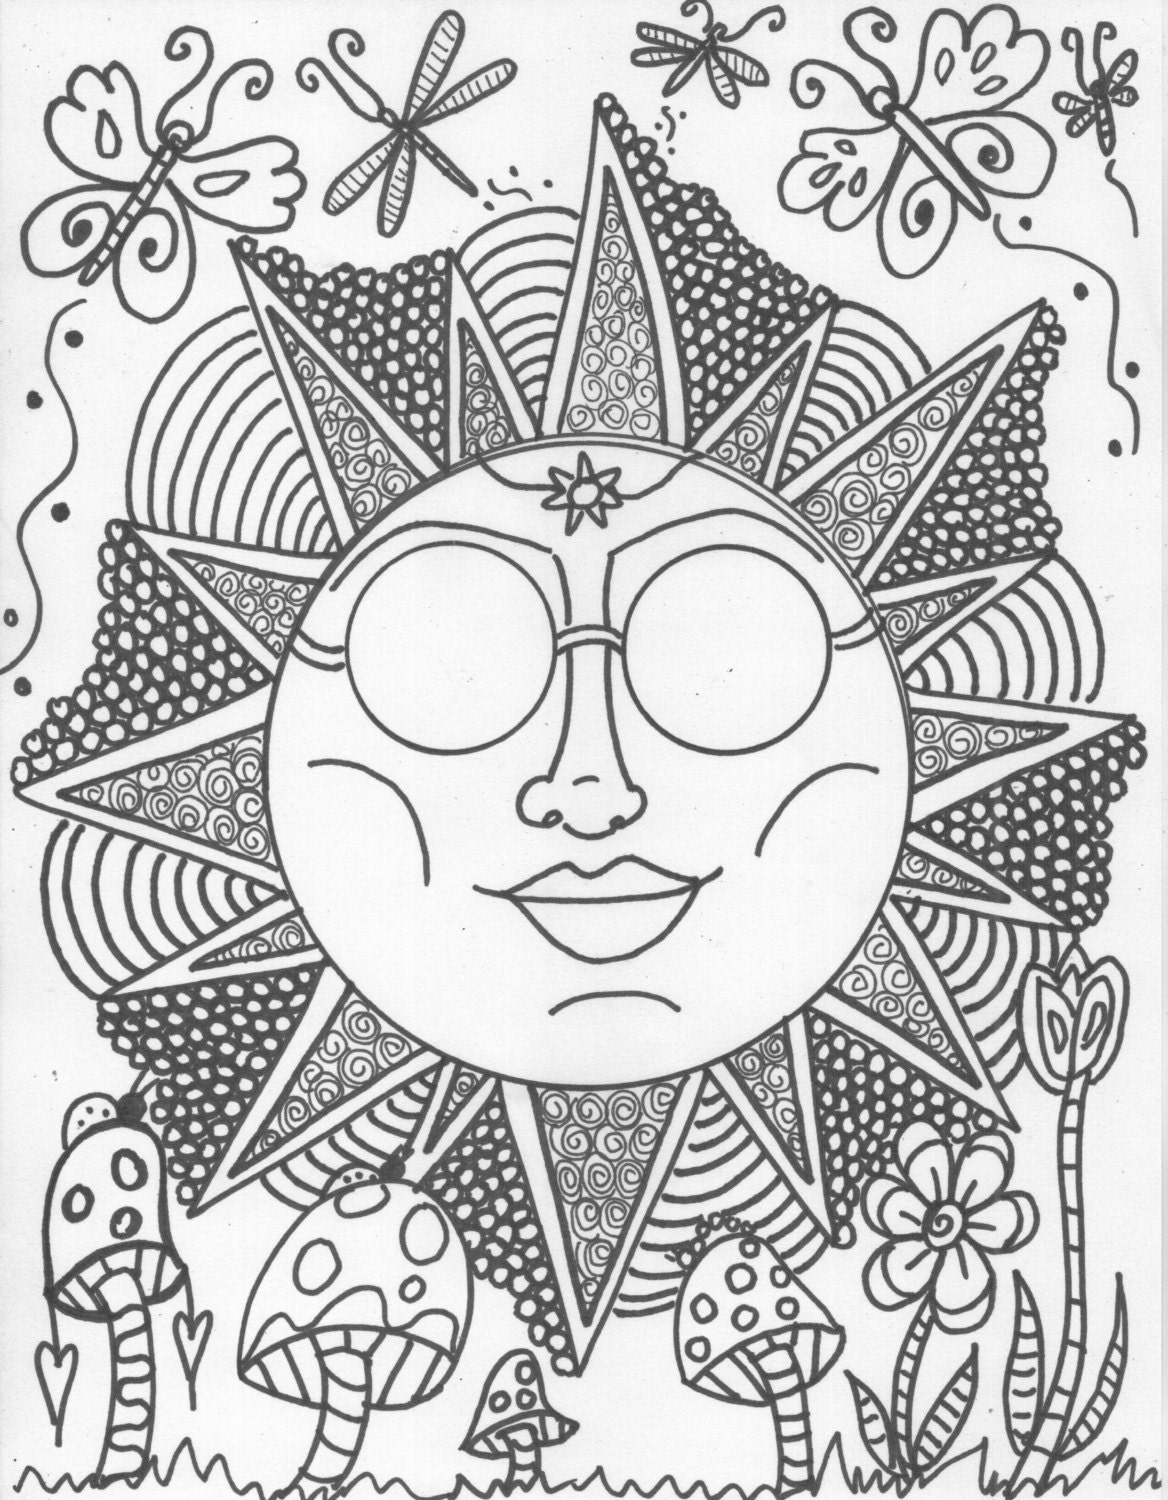 It's just a photo of Nifty Coloring Pages Hippie